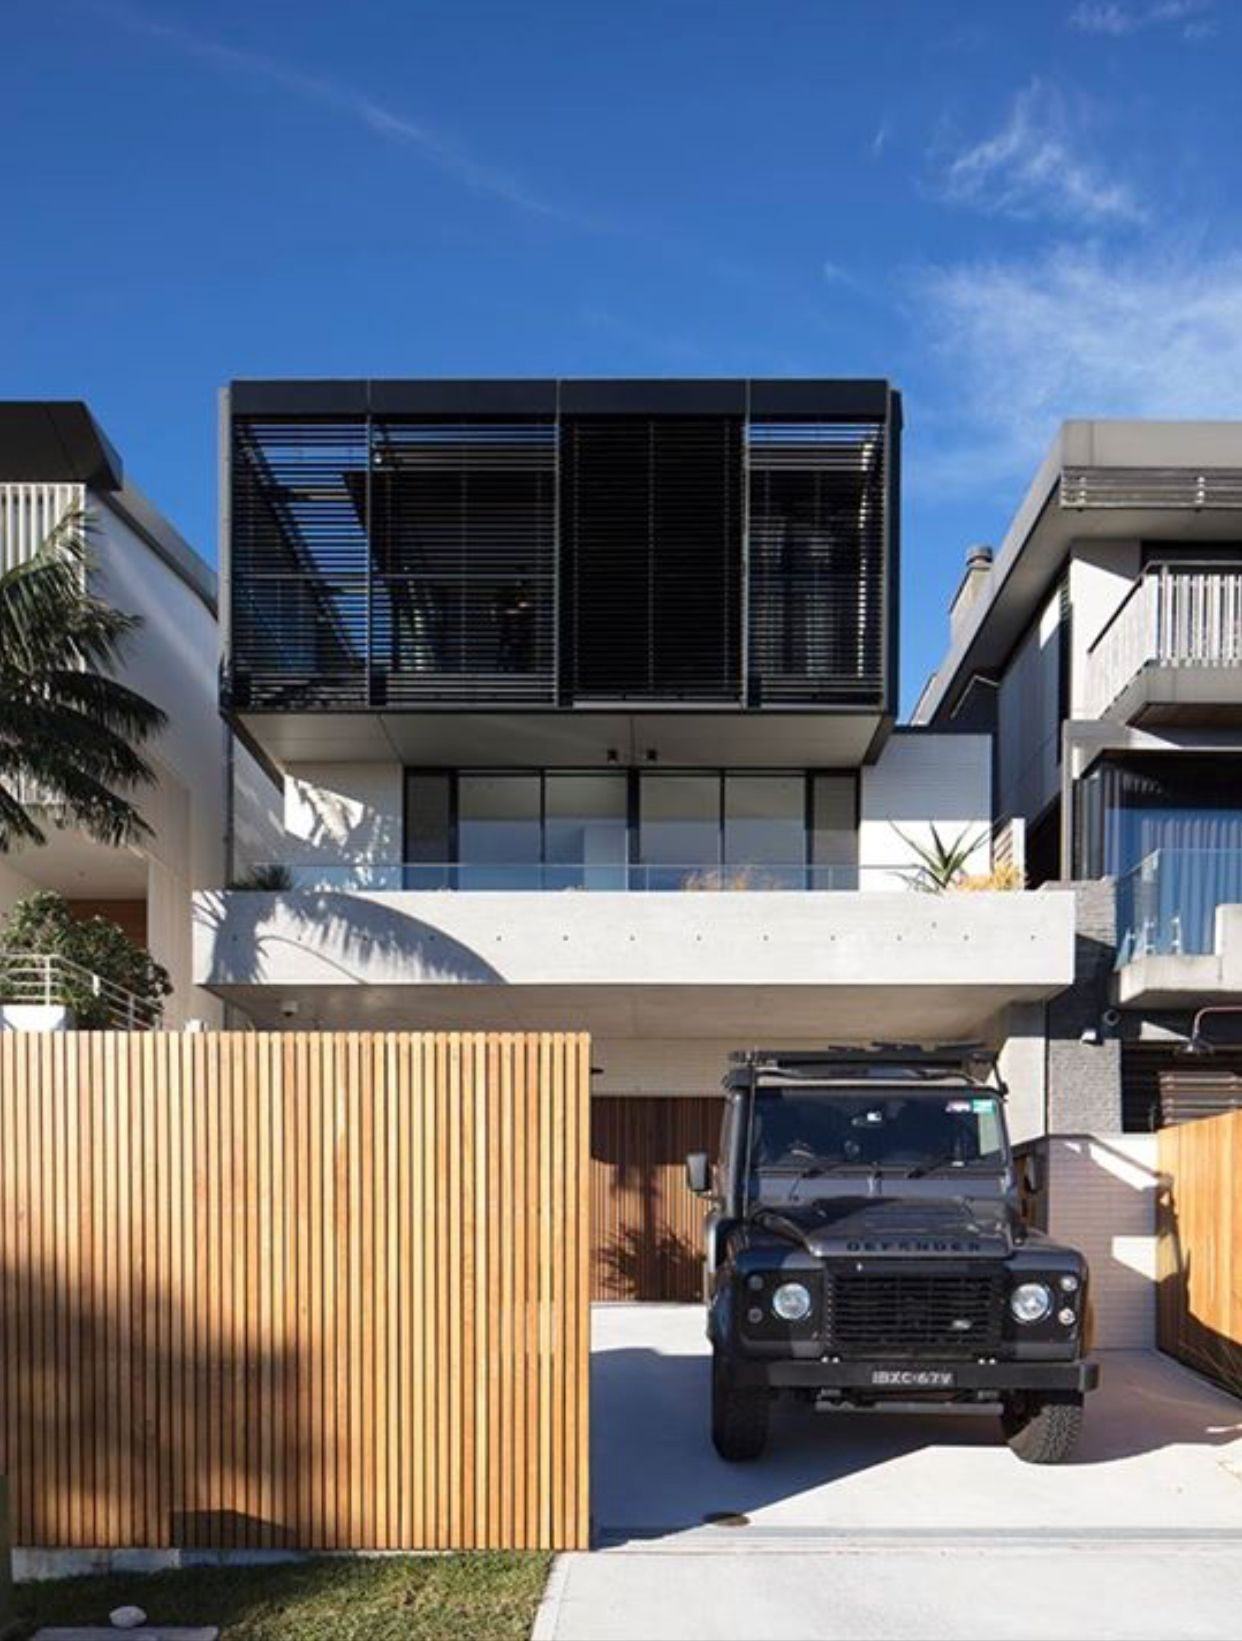 Inspirational houses rochelle abood also best images residential architecture rh pinterest